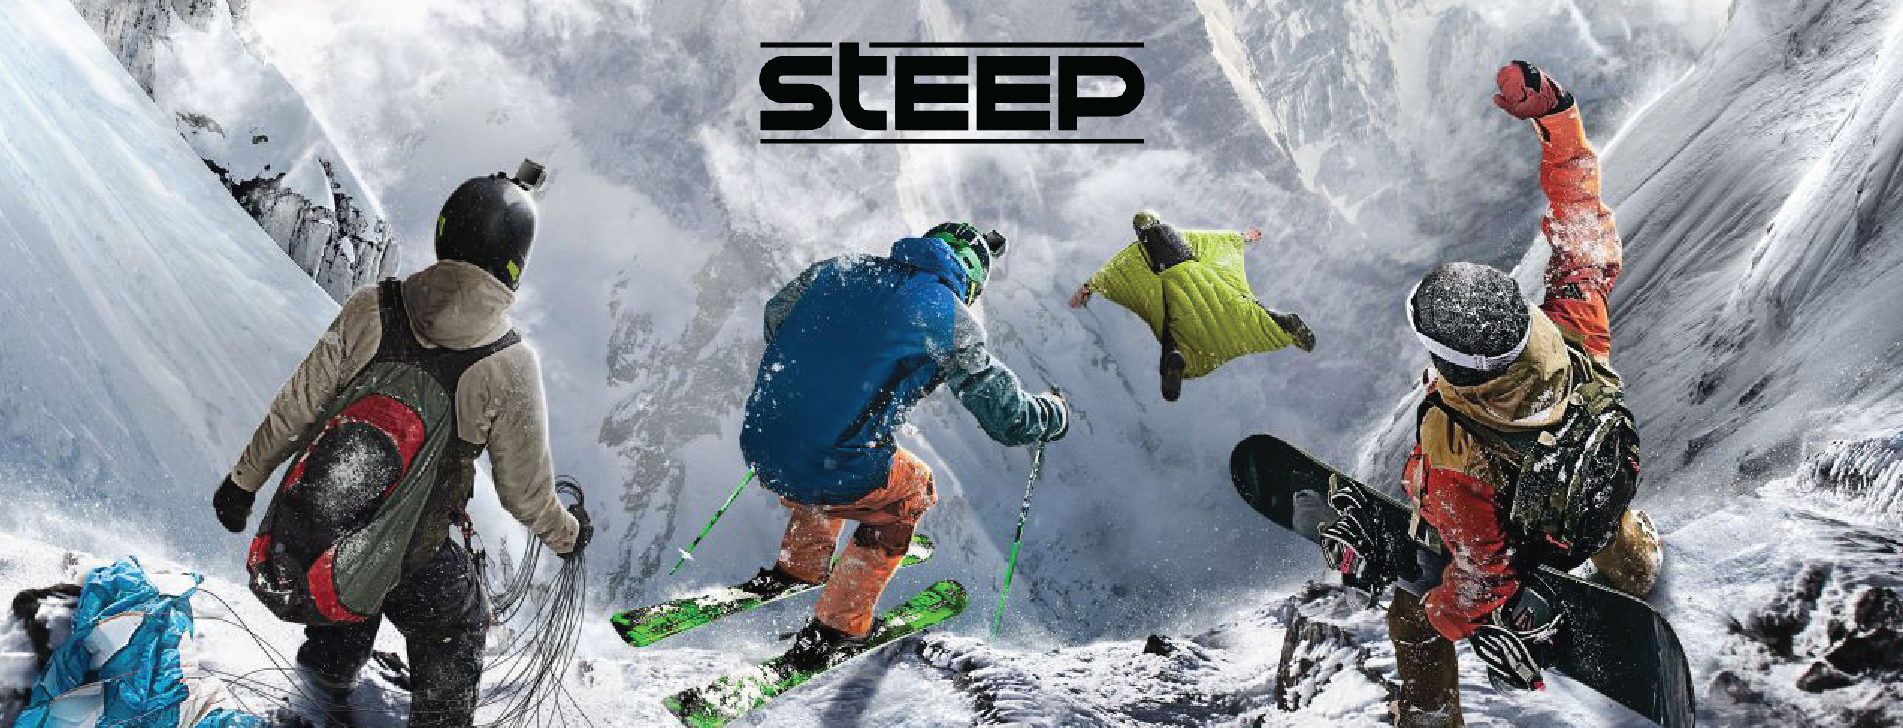 Game series localization: STEEP by Ubisoft